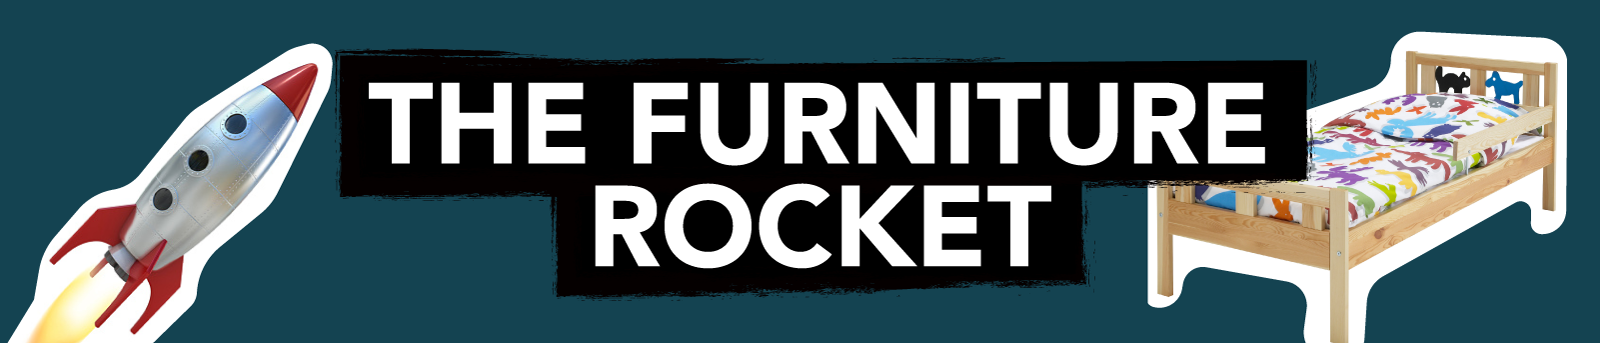 Furniture Rocket